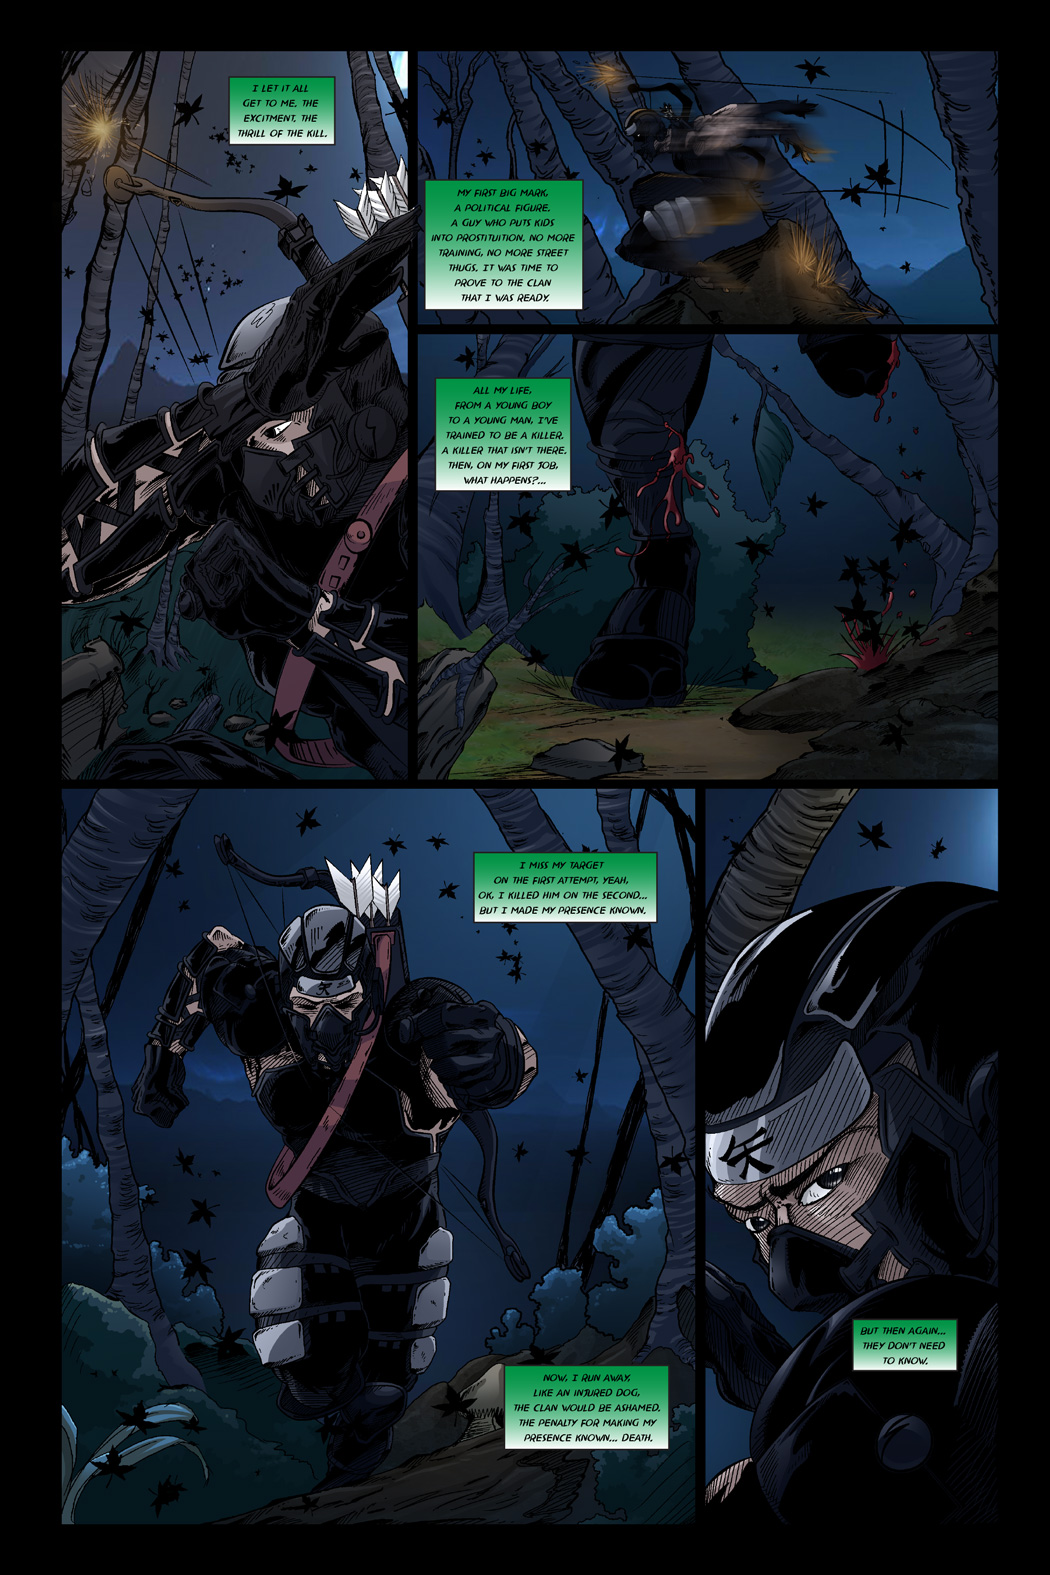 THREE ARROWS, FOUR TARGETS (Page 1)